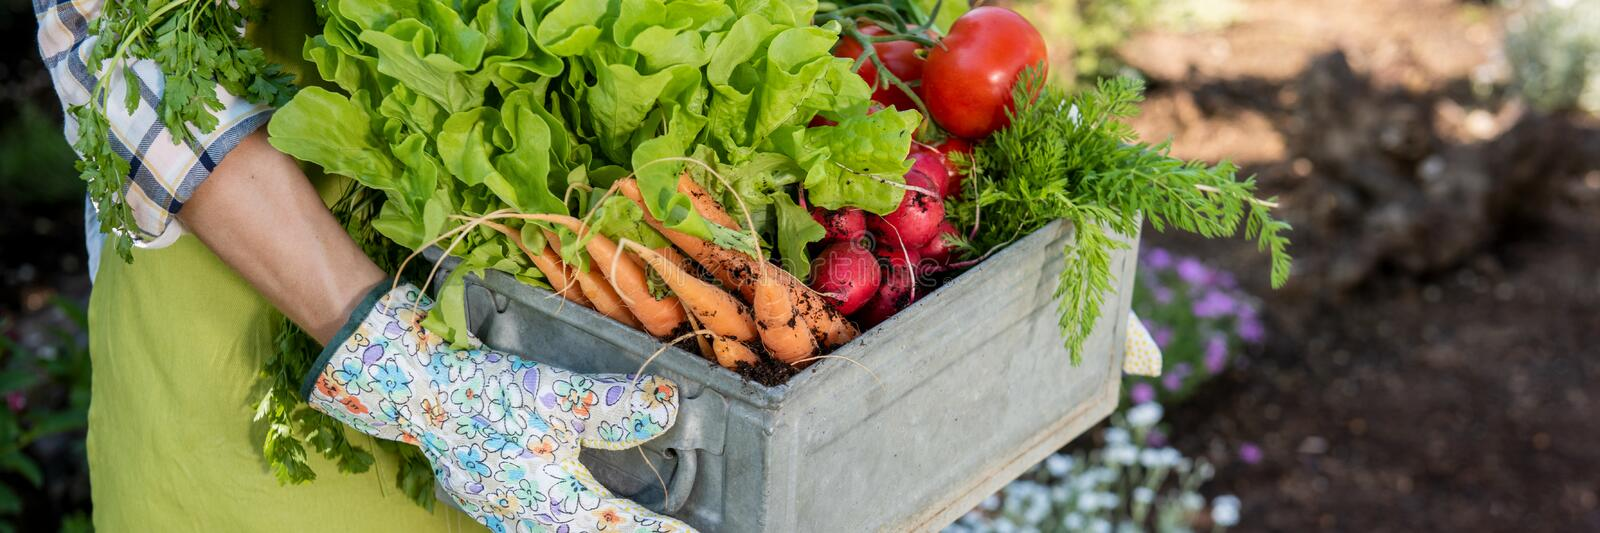 Farmer holding crate full of freshly harvested vegetables in her garden. Homegrown bio produce concept. Sustainable living. Unrecognizable female farmer holding royalty free stock images